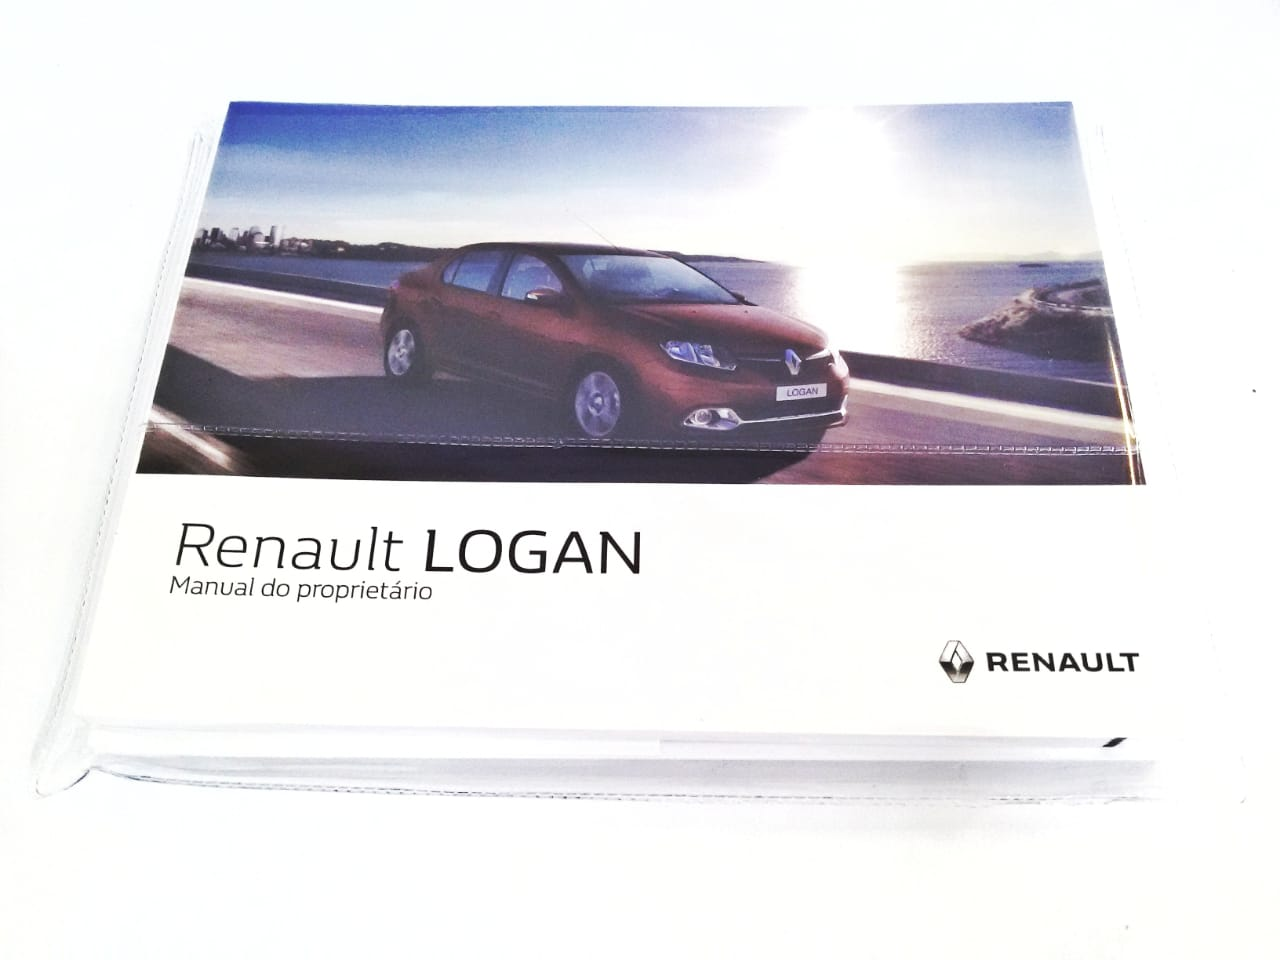 Kit Manual do Proprietario - Kit Manual do Proprietario - Kit - <b>renault Novo Logan de 2016 Até 2018</b> - Sku: 969247928r